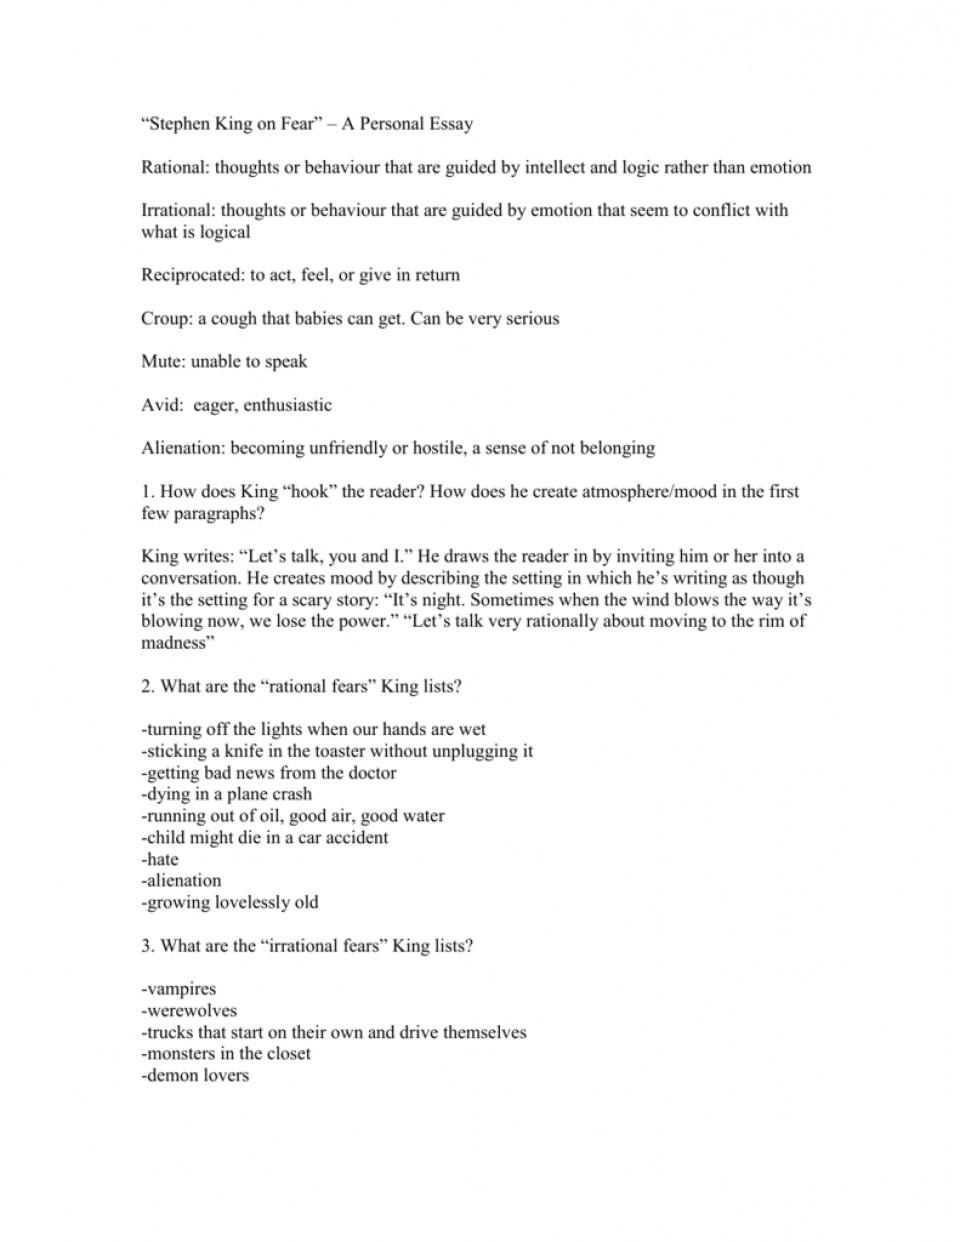 024 Essay On Fear 008011239 1 Stupendous Of Darkness My Failure Ways To Overcome Public Speaking 960